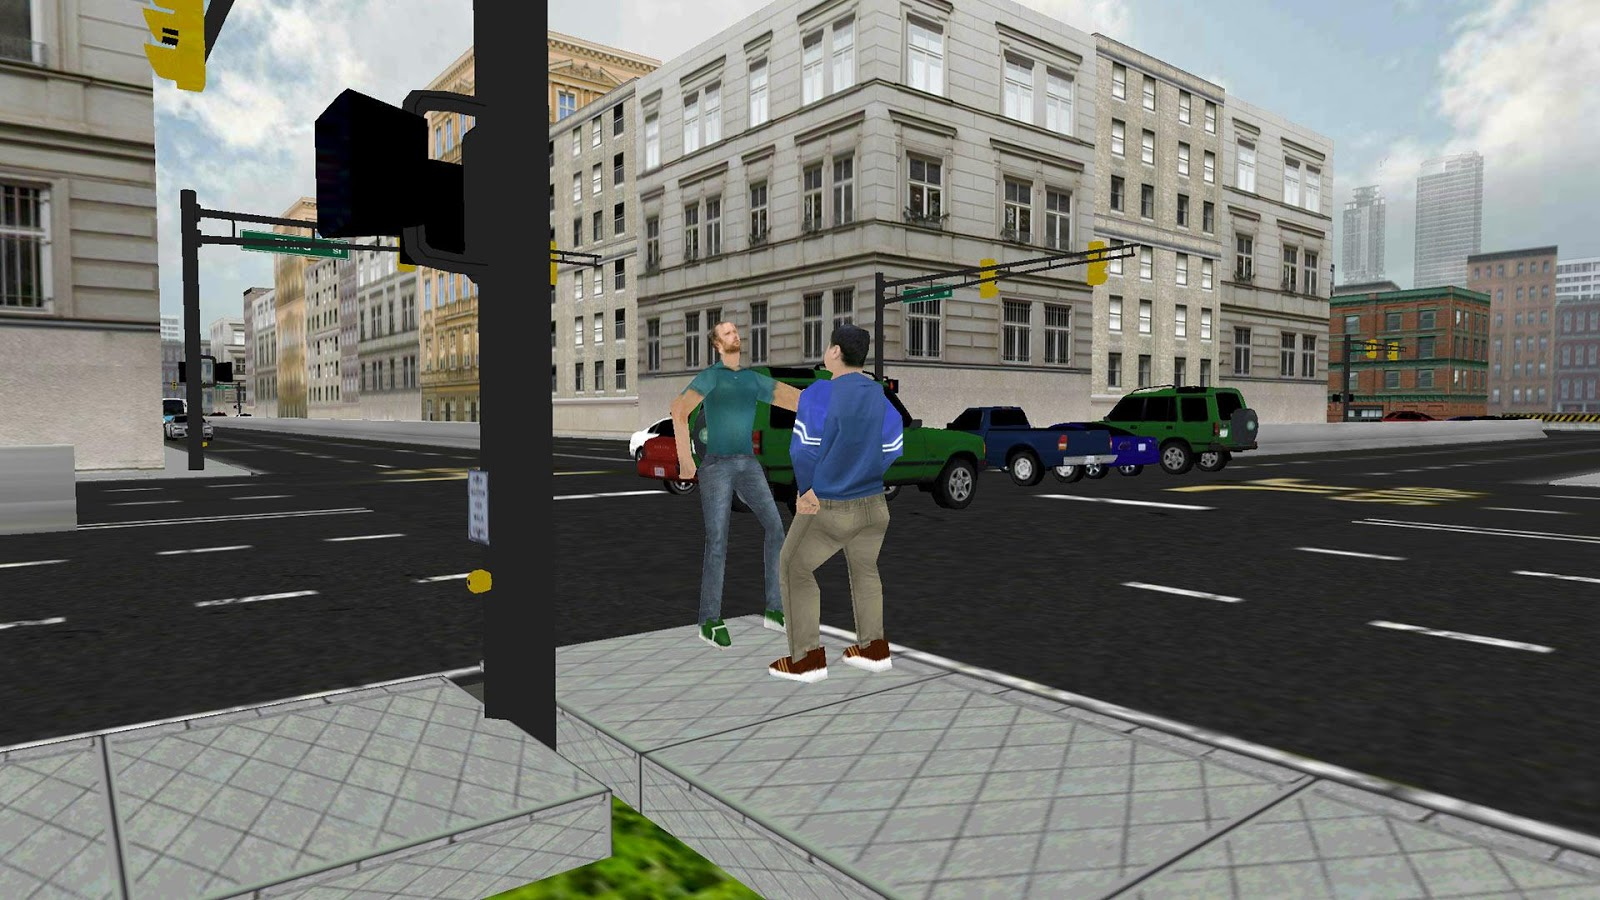 City Driving 3D : Traffic Roam v1.4 .apk File